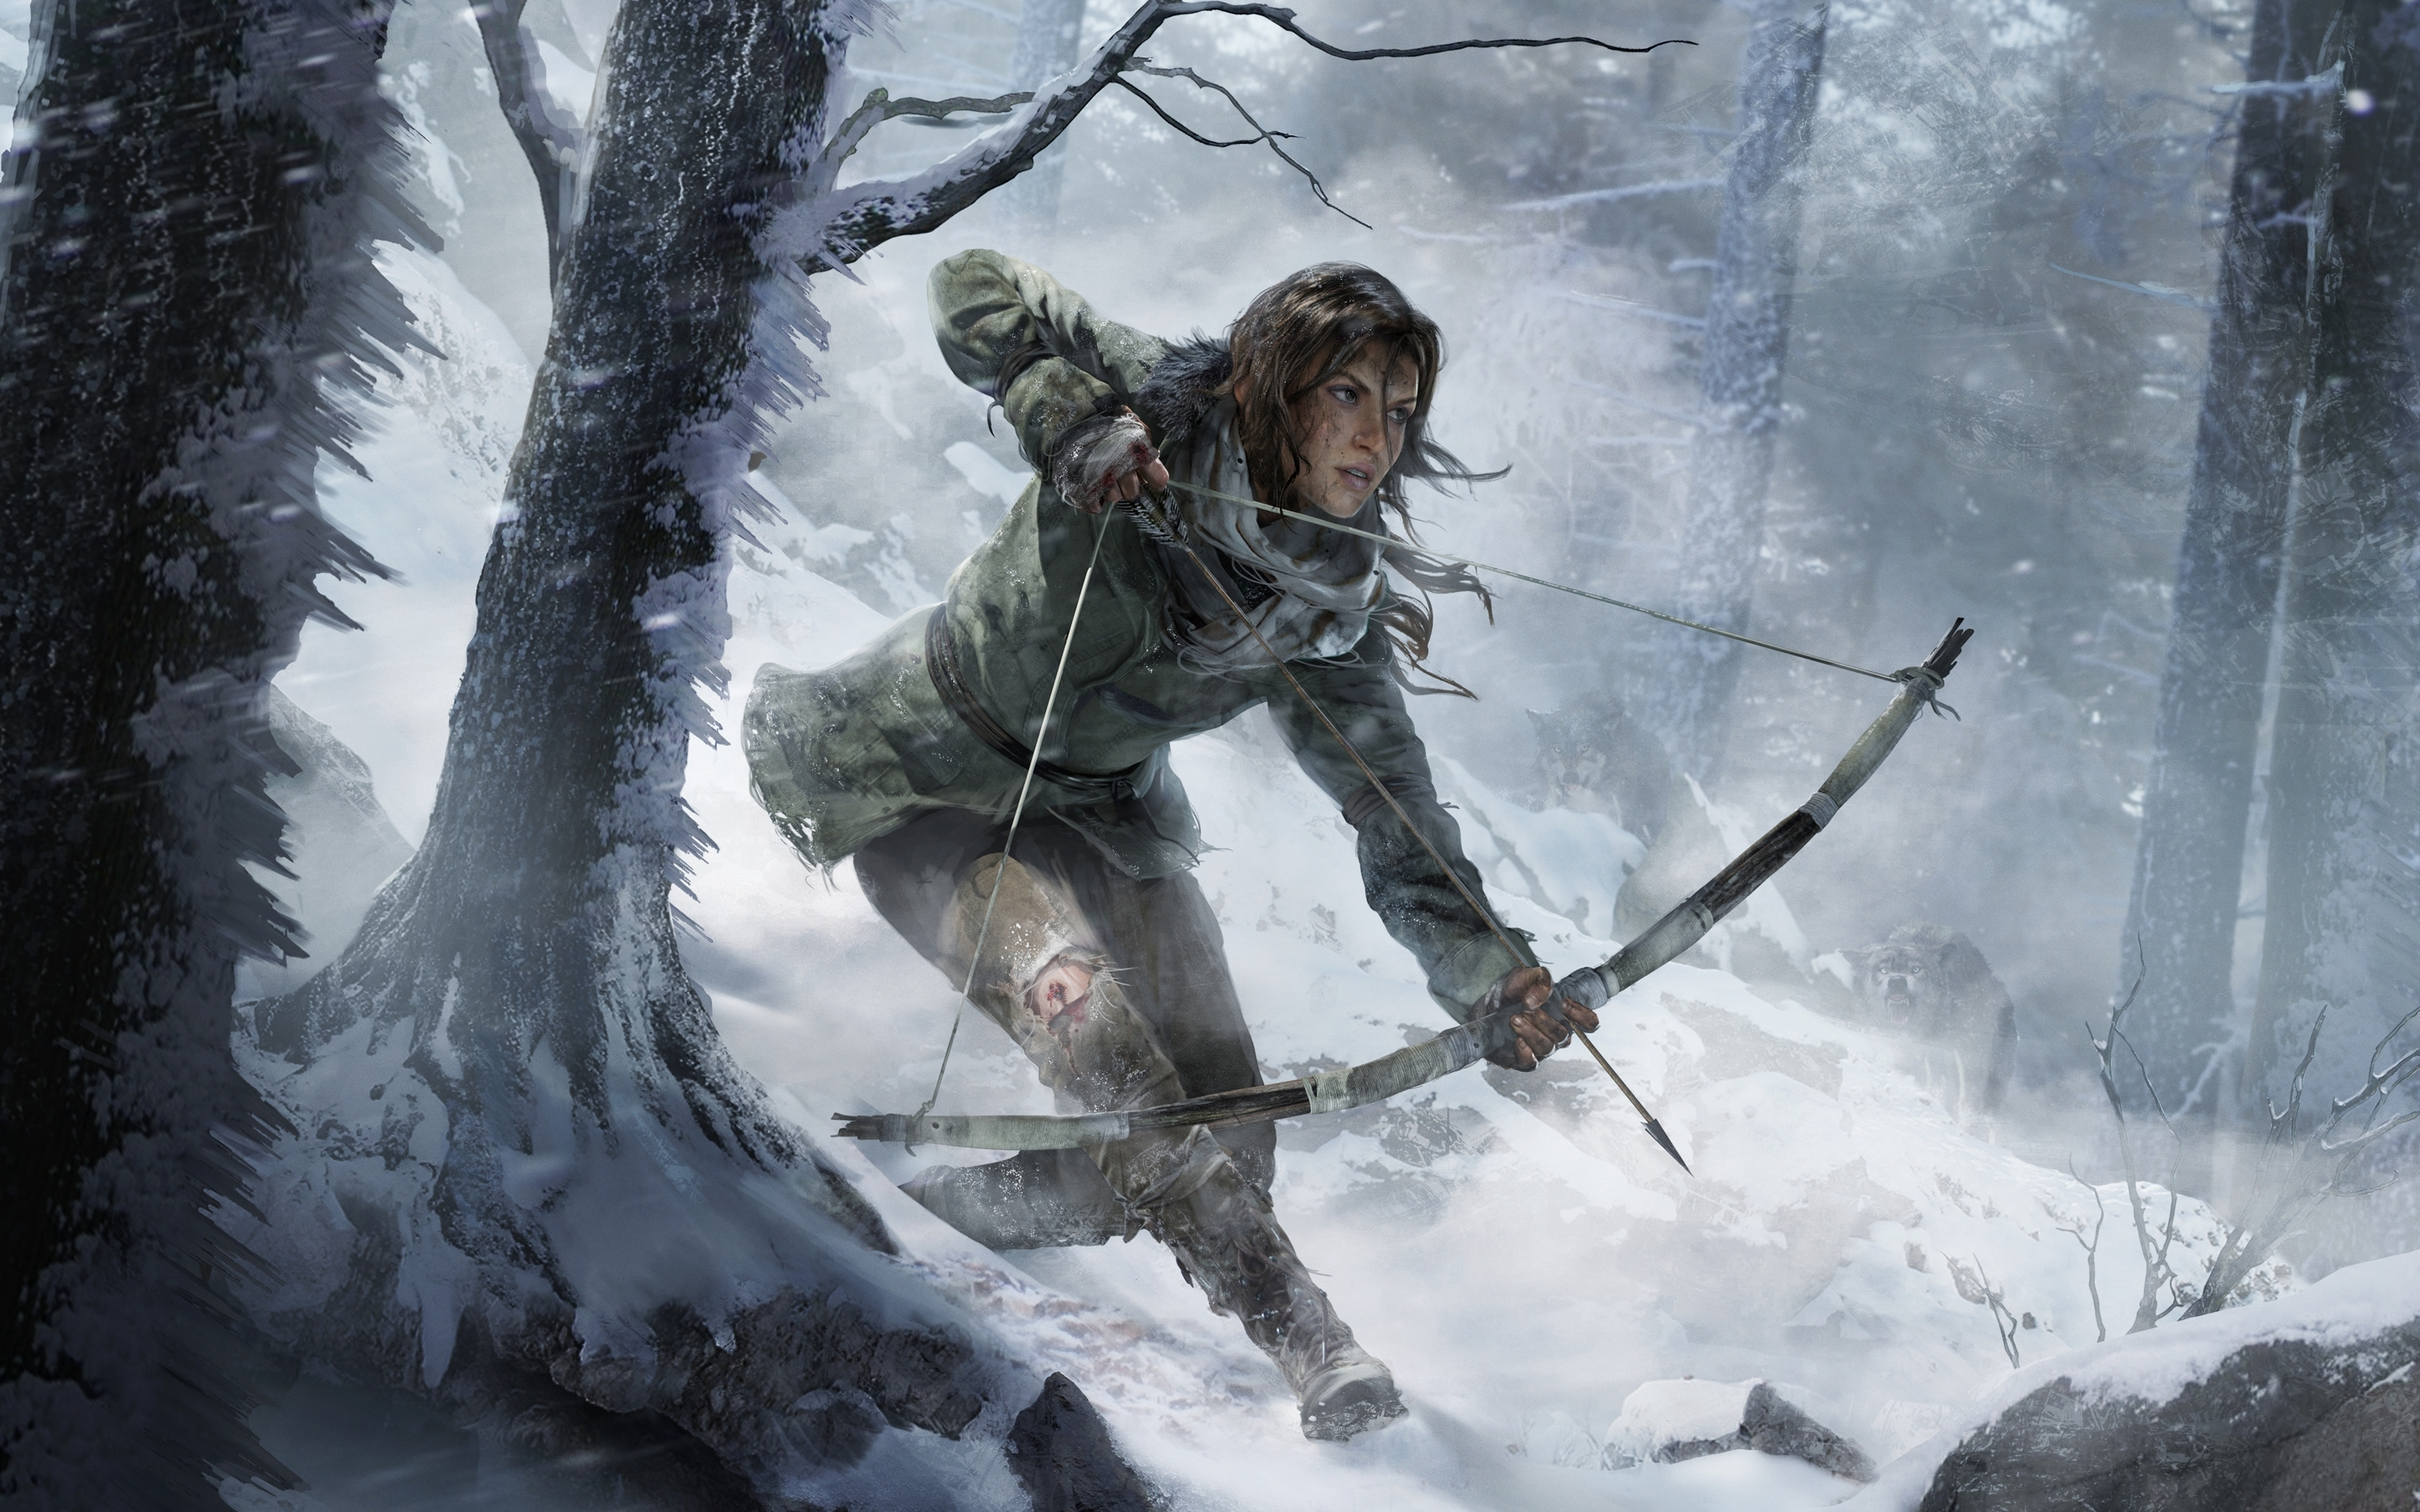 rise of the tomb raider 2015 game wallpapers | wallpapers hd